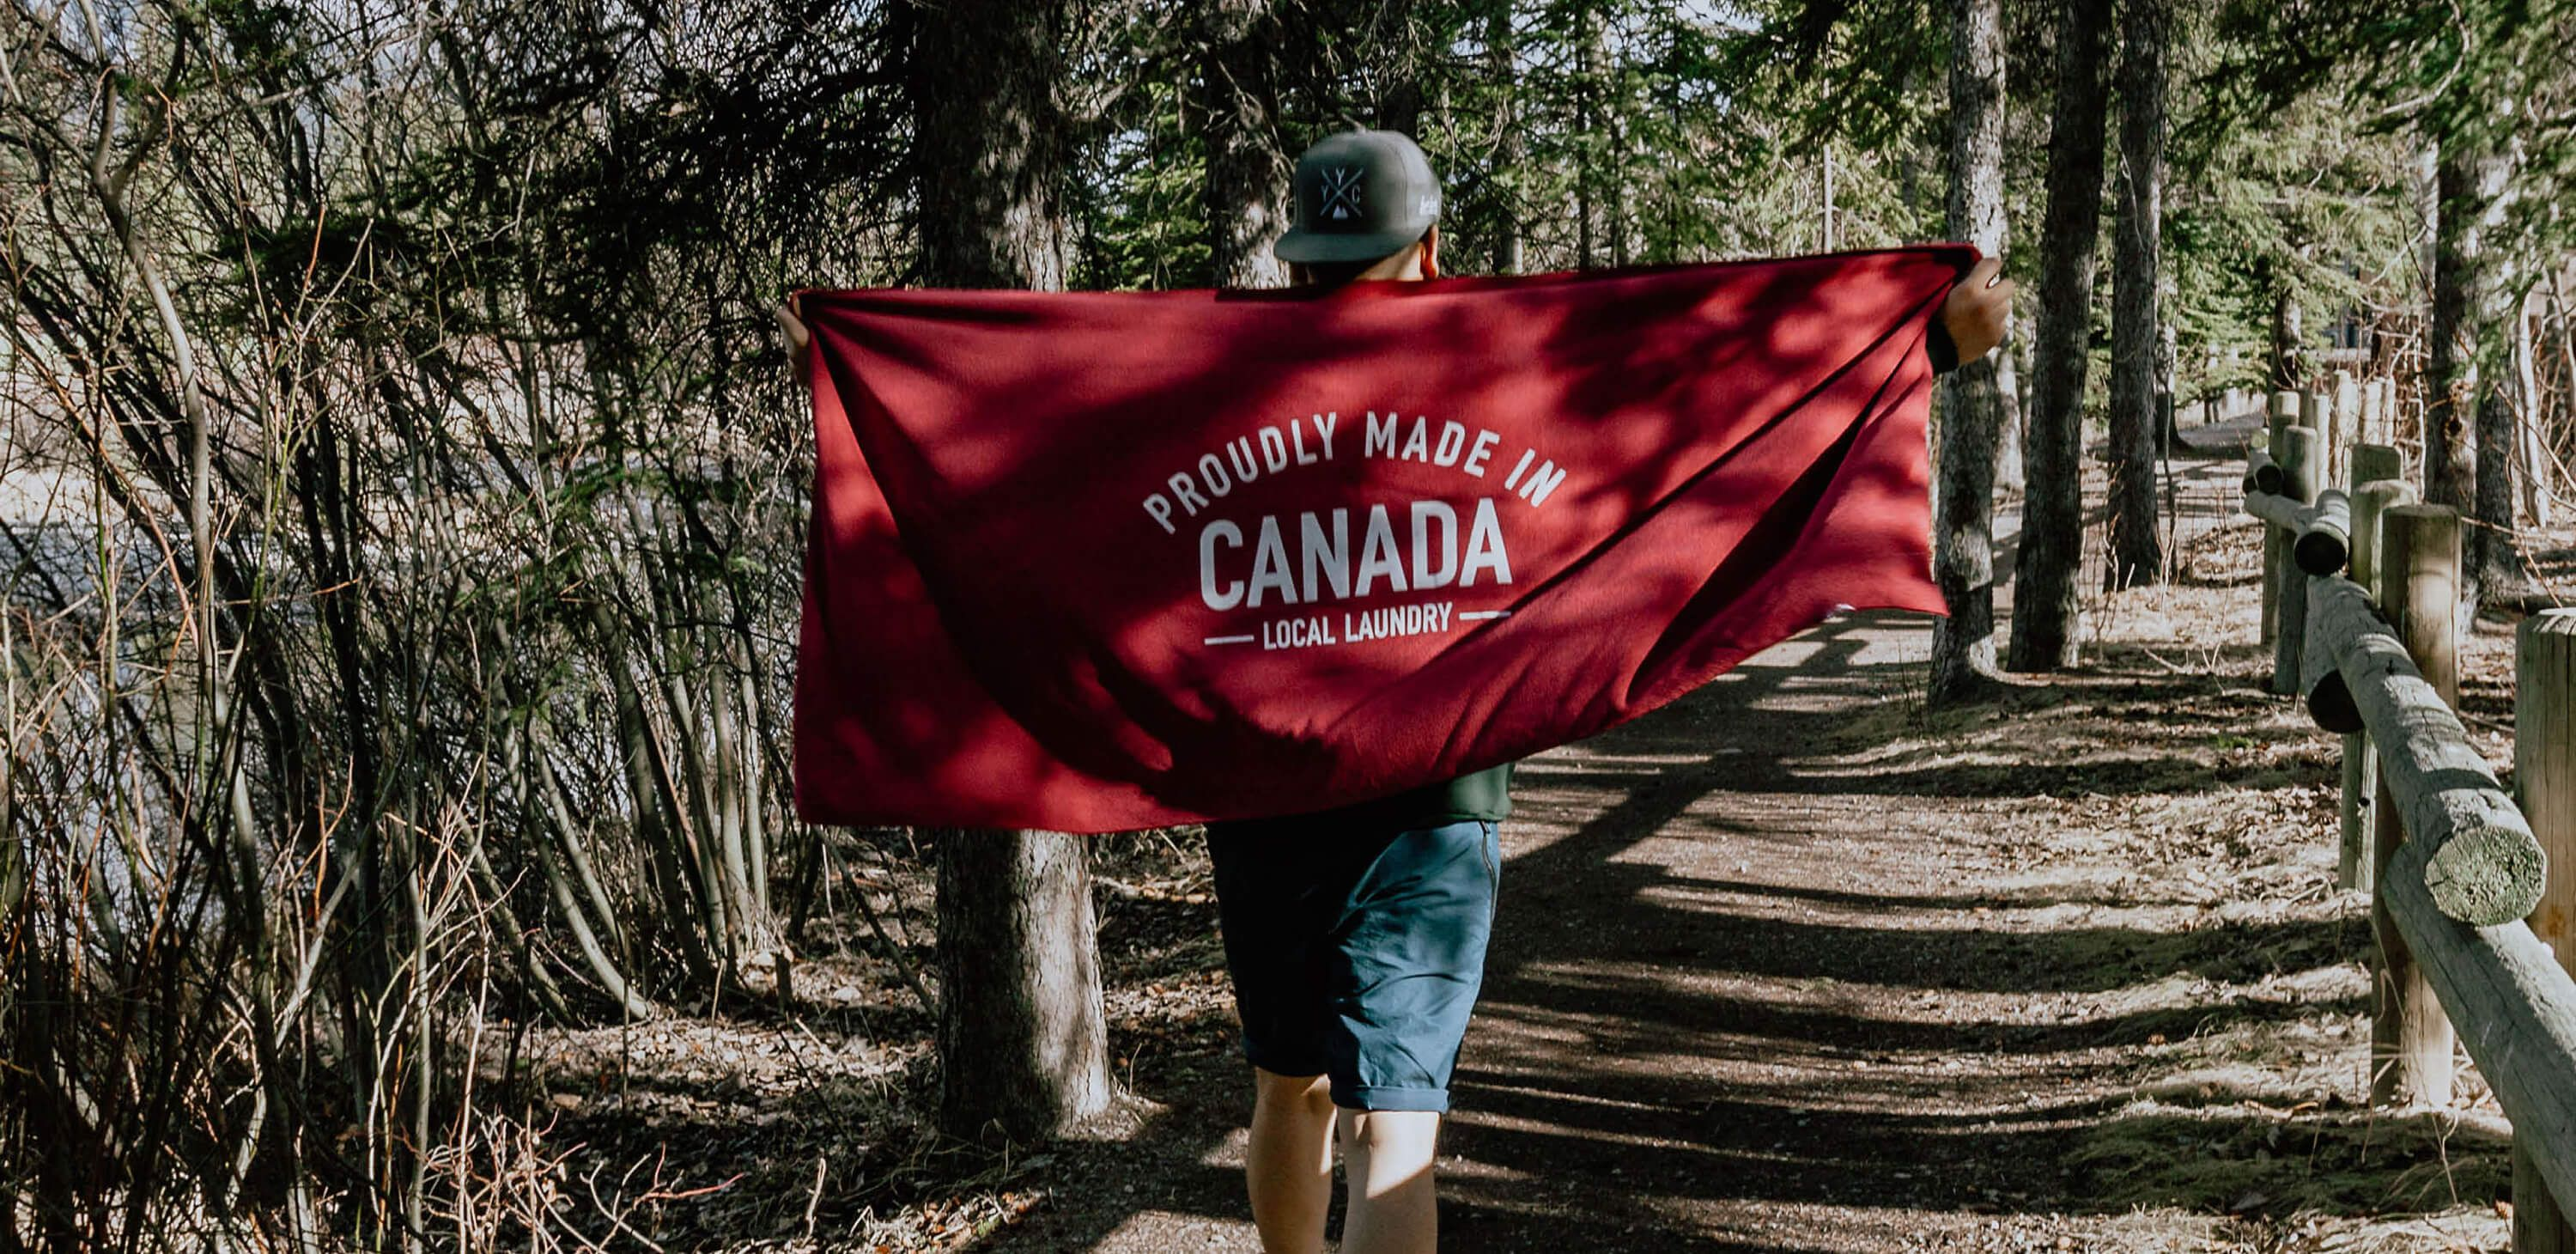 Connor and Dustin are the co-founders of Local Laundry, a made in Canada clothing company based in Calgary, Alberta.